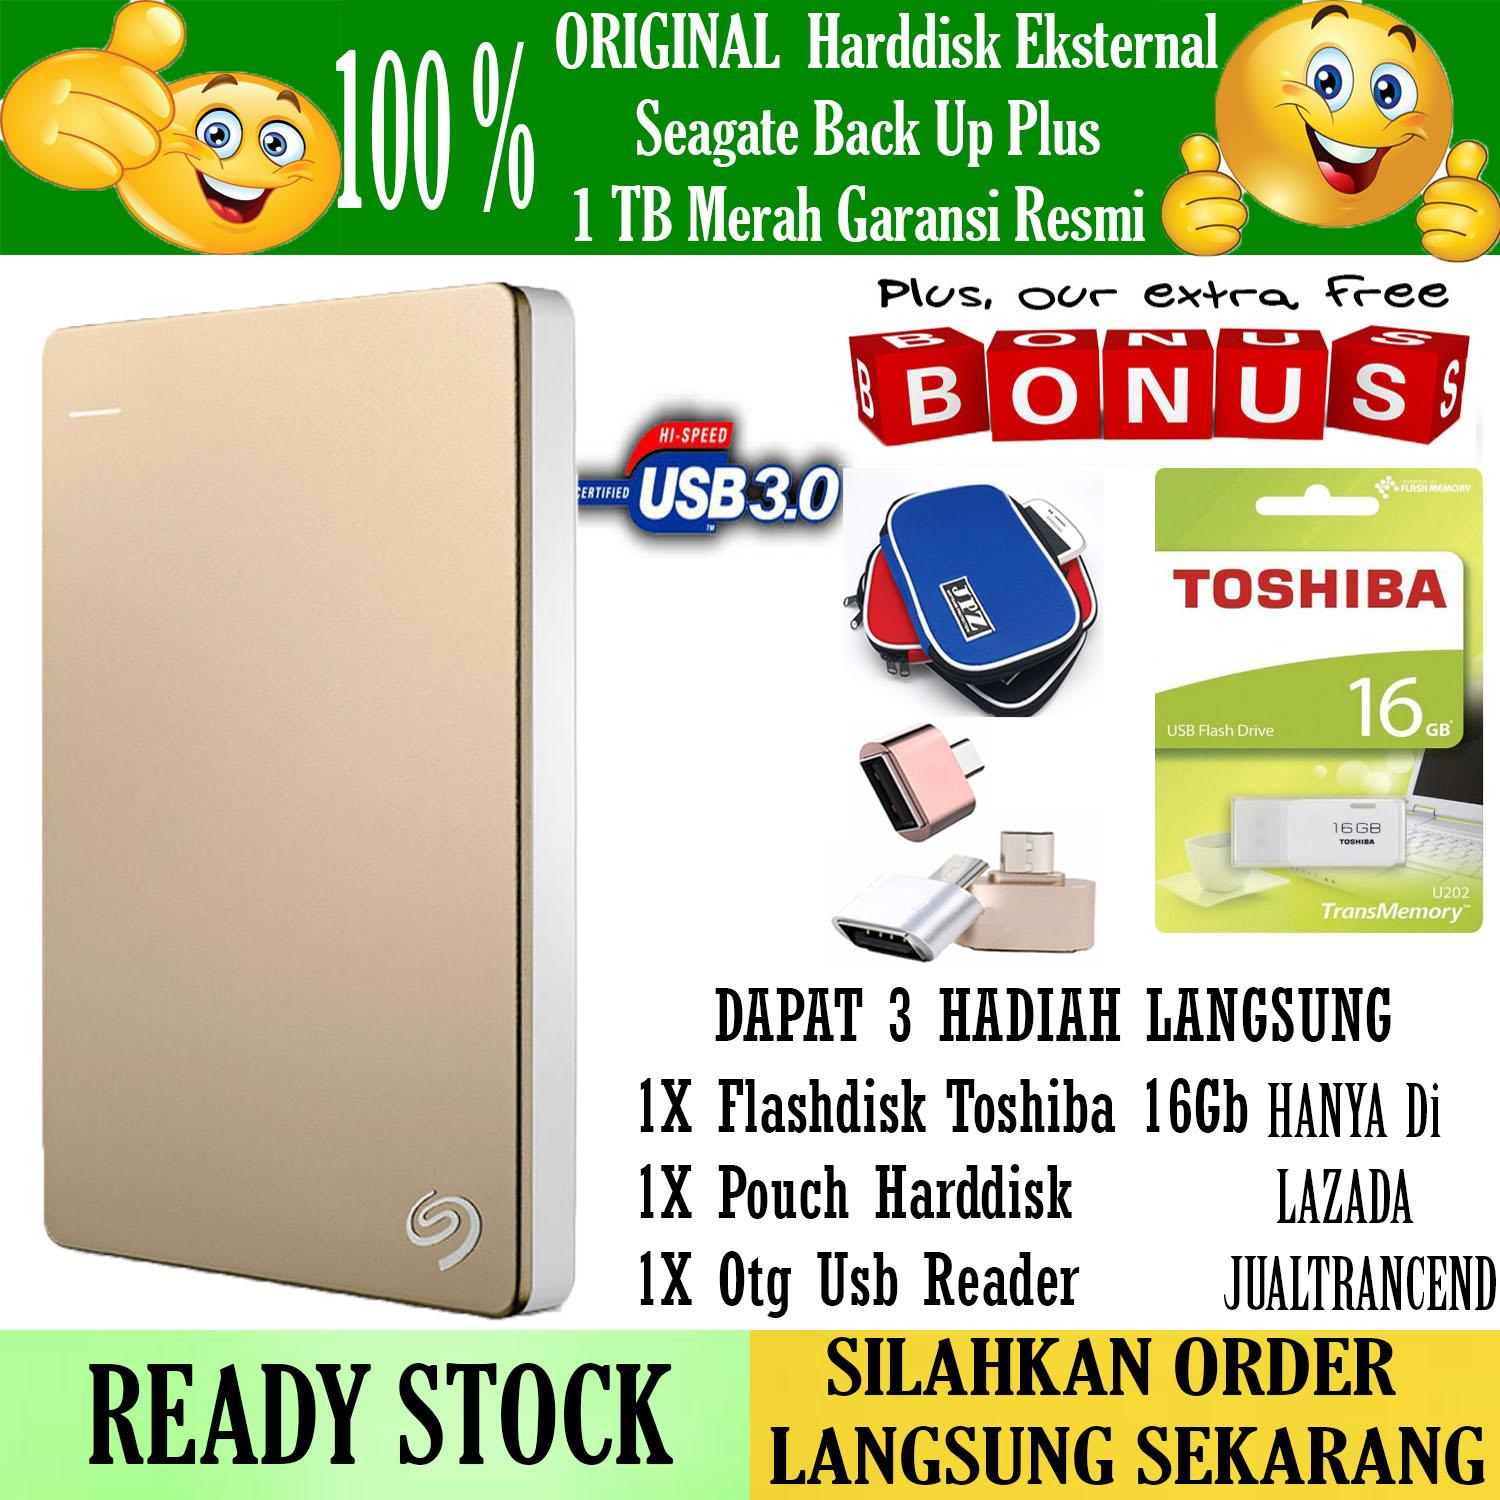 Seagate Backup Plus Slim 1TB - HDD - HD - Hardisk External 2.5 - Gold + Gratis  Flashdisk 16Gb Toshiba 2.0 + Pouch Harddisk + Otg Mini Reader